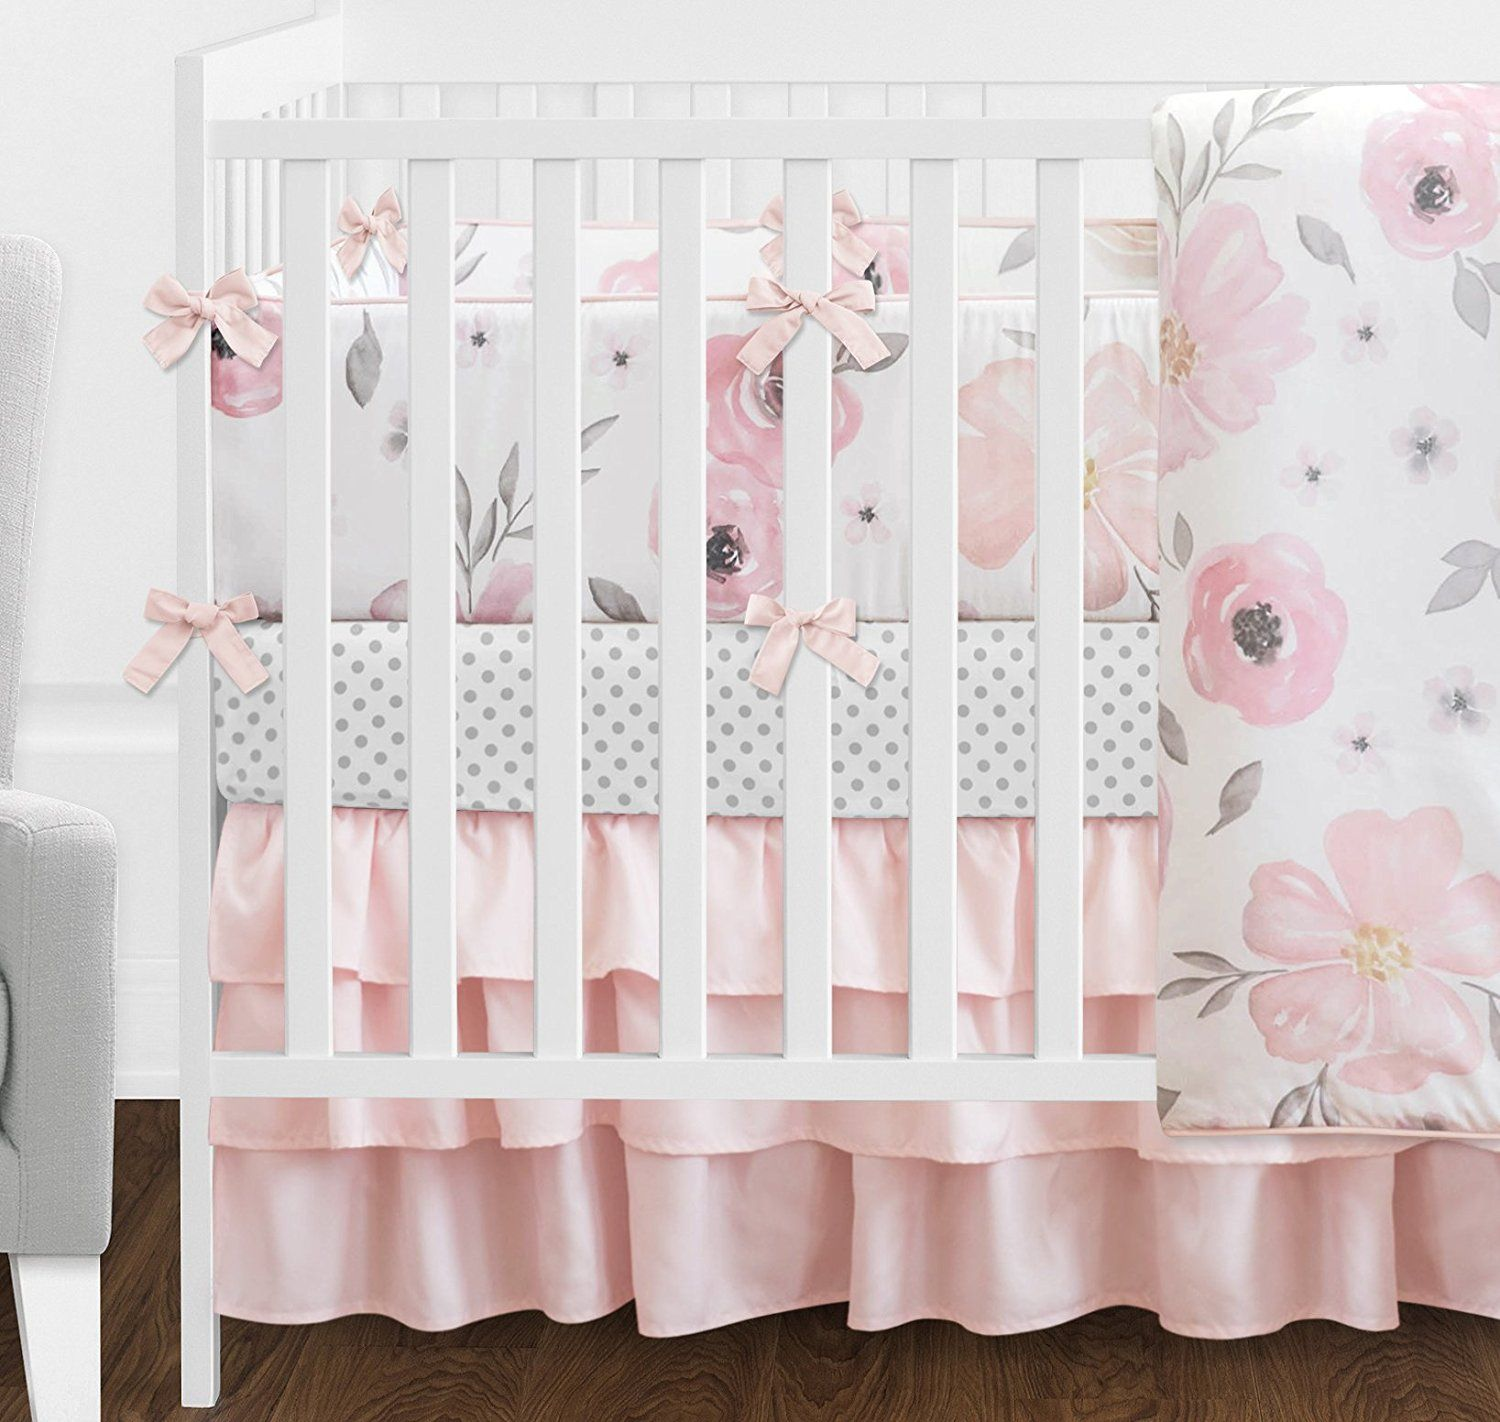 for crib barn blush bed baby sheet girl full size etsy of cheating set sets pink cribs white sheets girls bedding nursery pottery